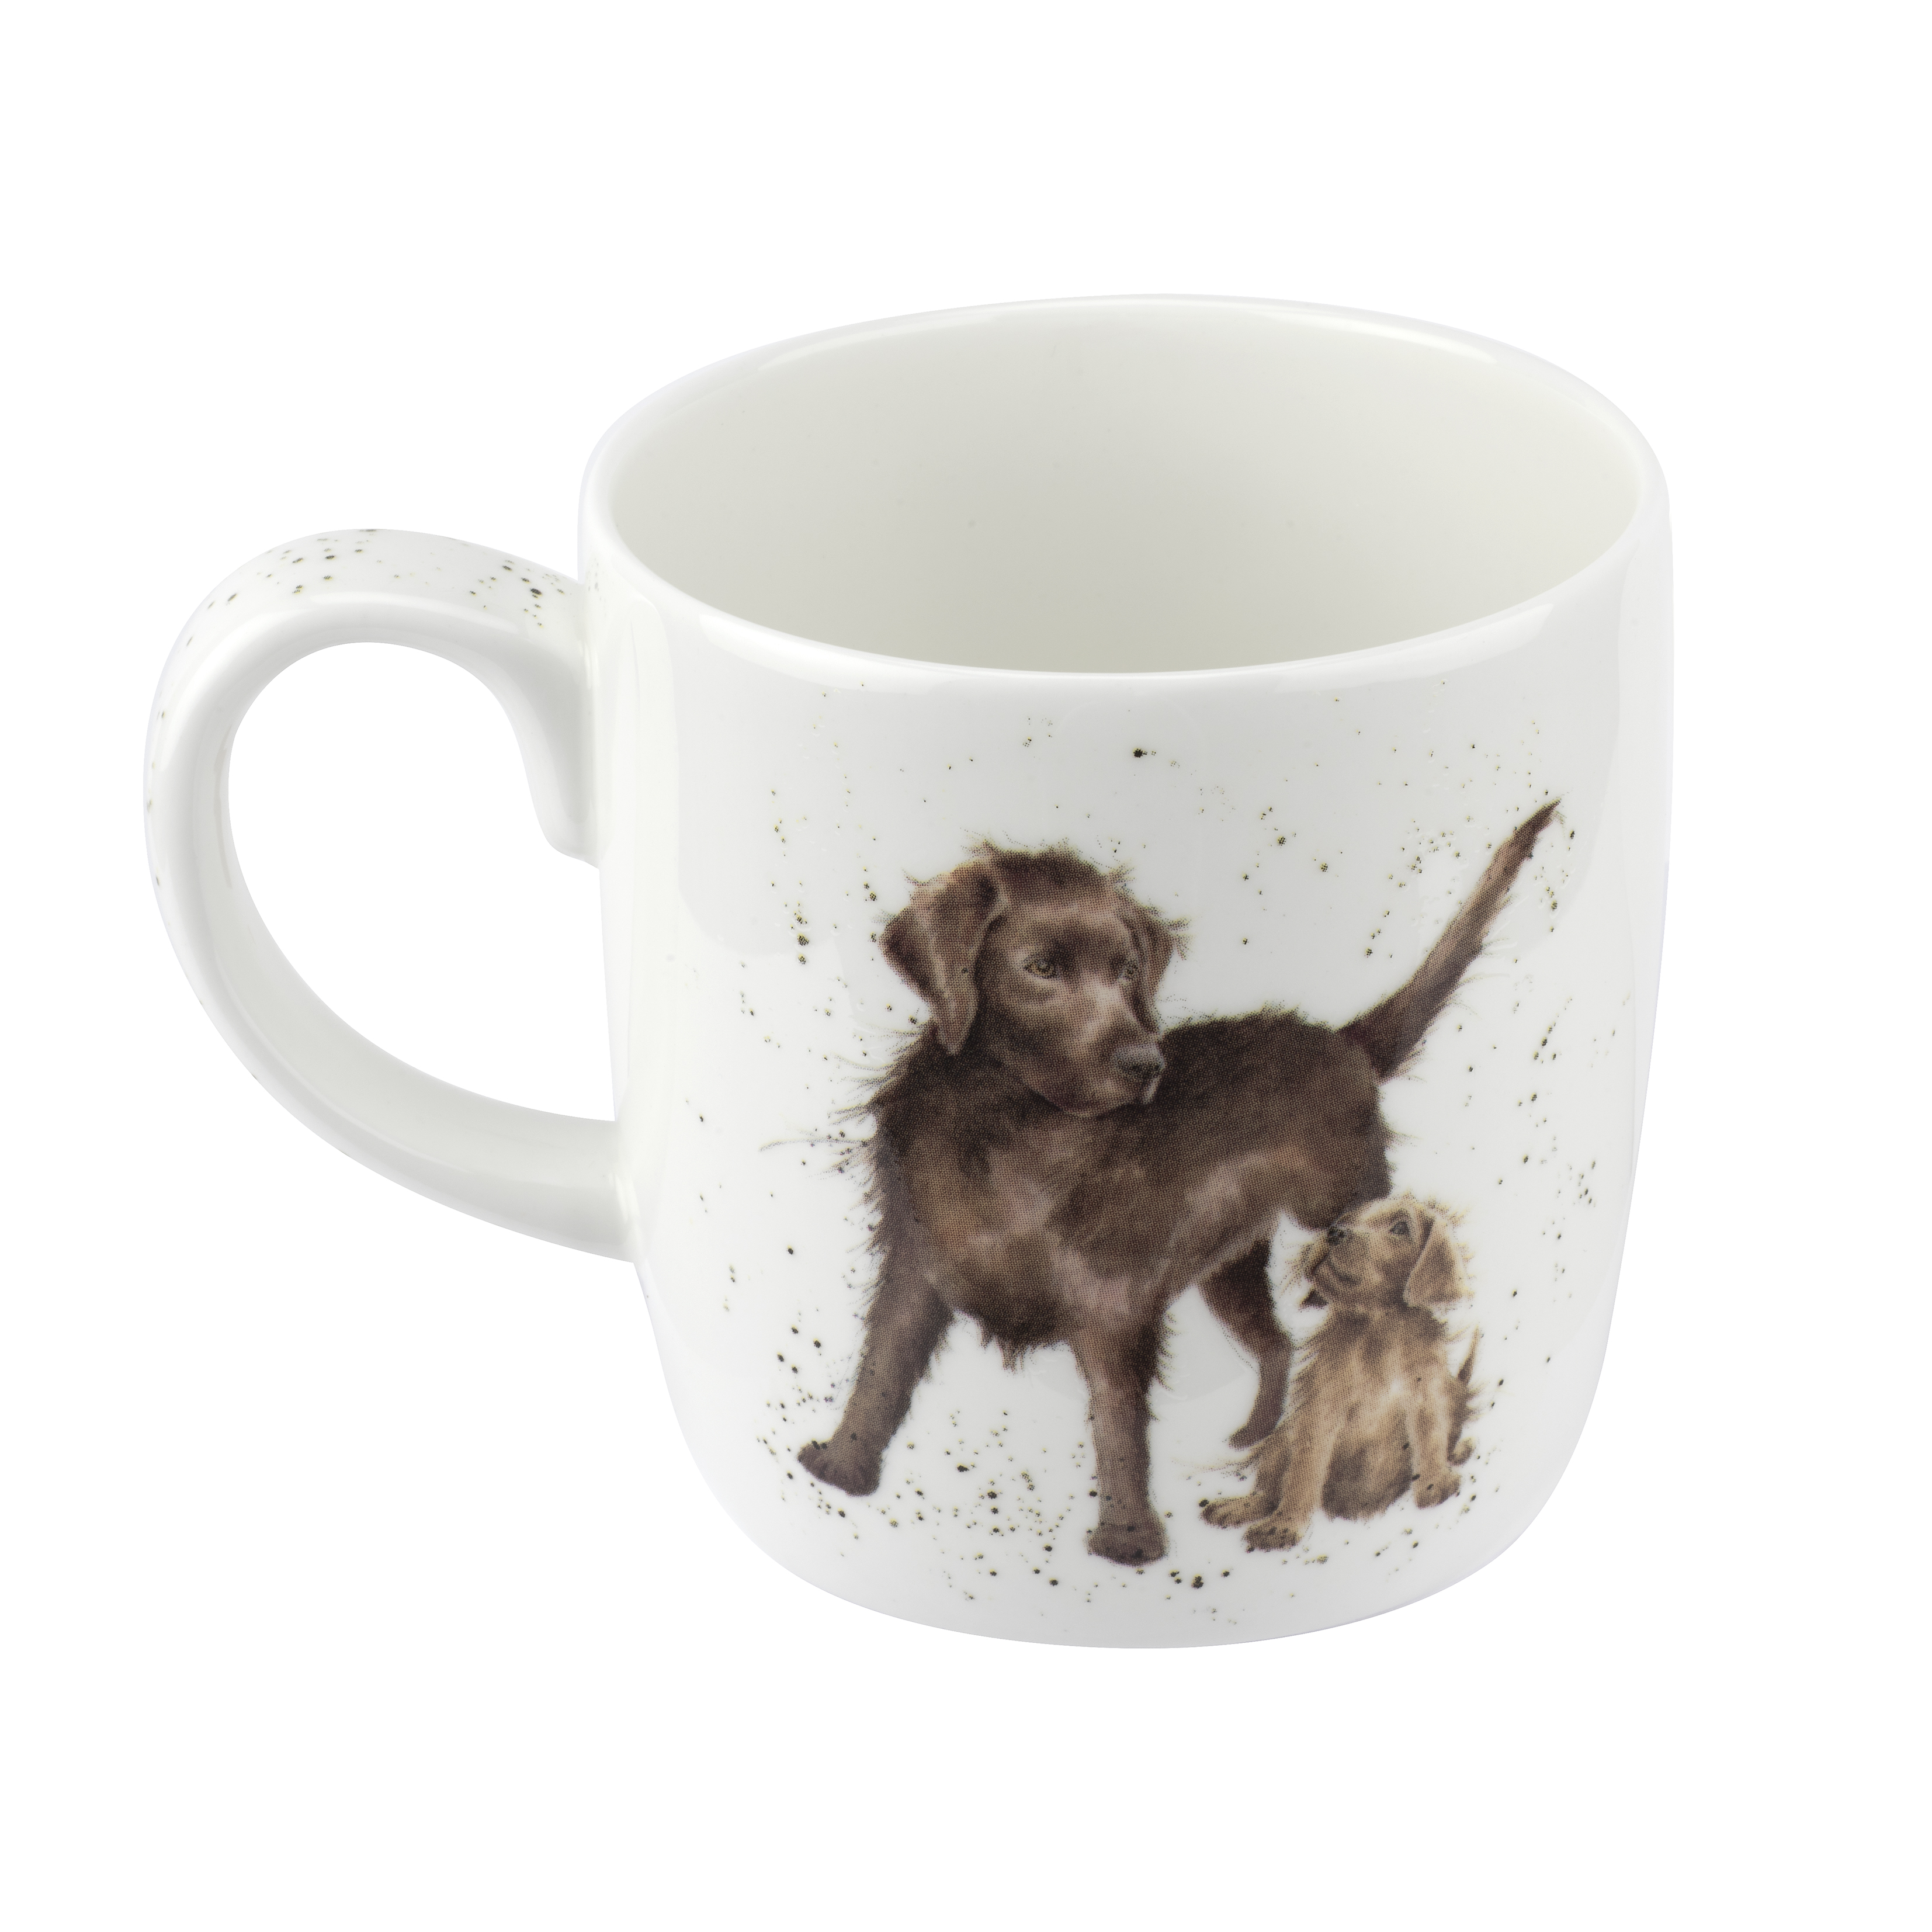 Royal Worcester Wrendale Designs Mug 14 Ounce Hopeful (Dog) image number 1